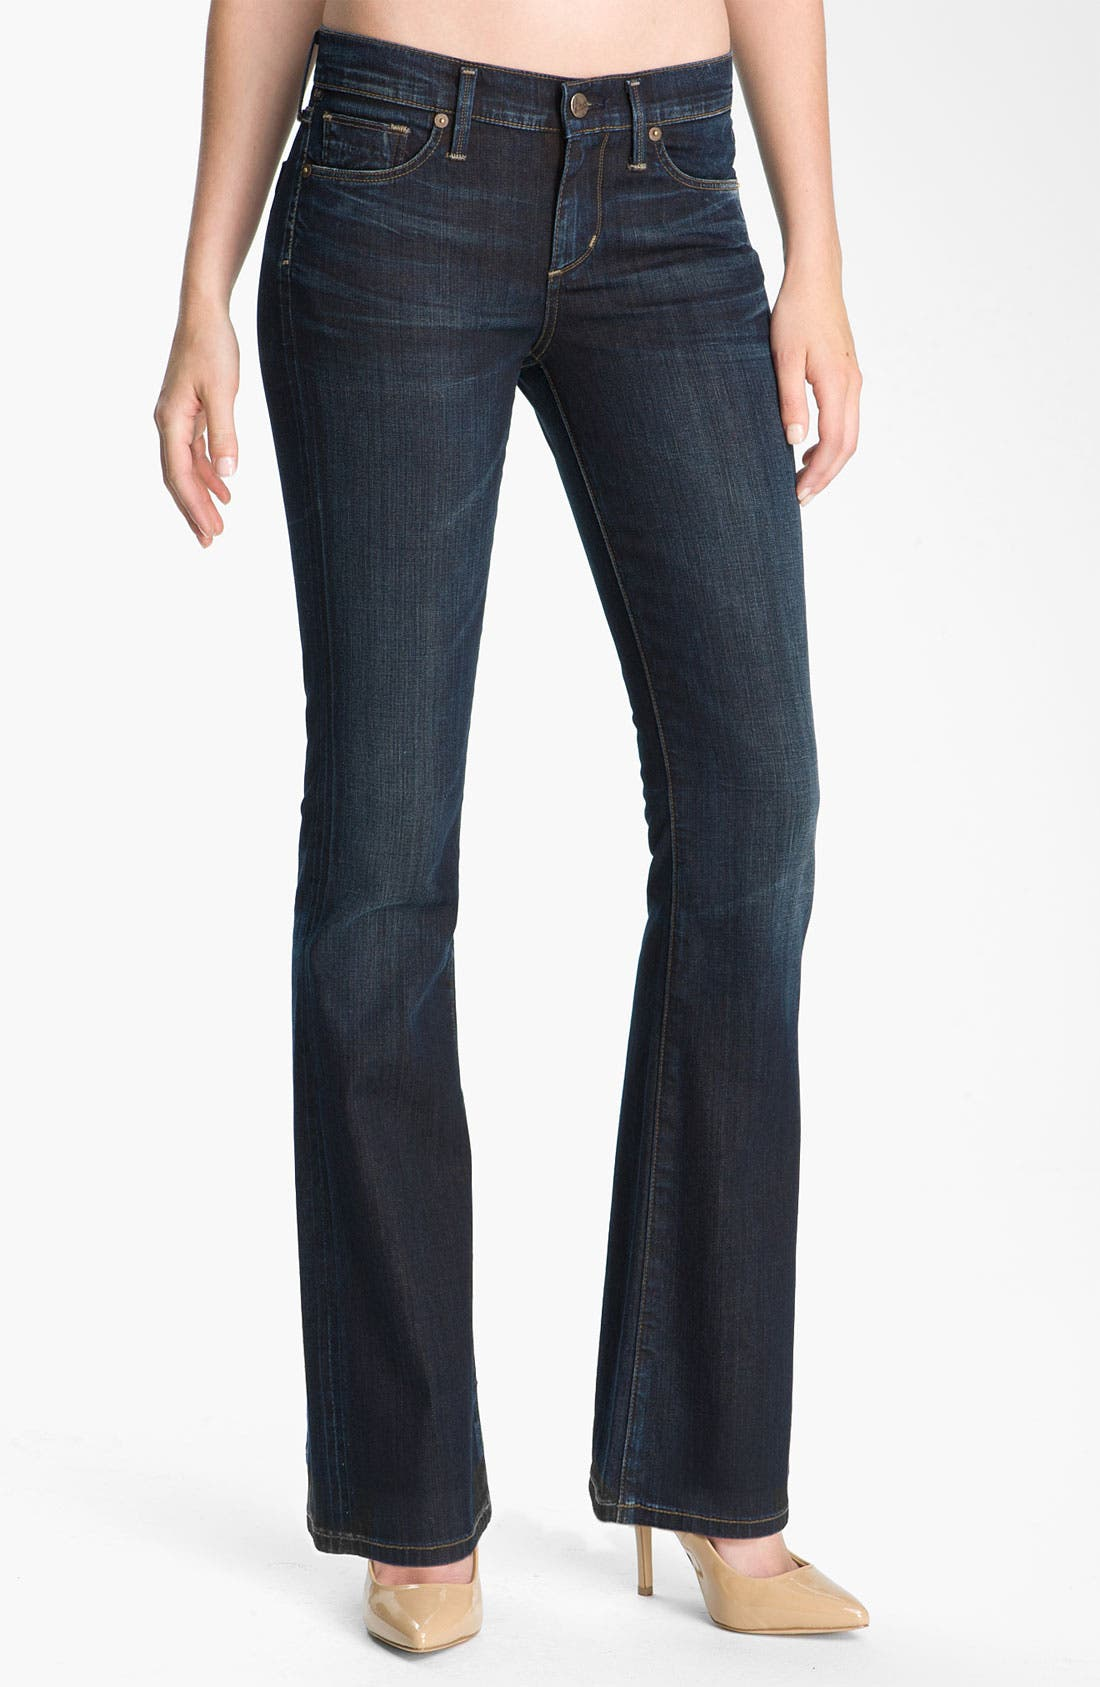 Alternate Image 1 Selected - Citizens of Humanity 'Dita' Bootcut Jeans (Felt Dark Blue) (Petite)